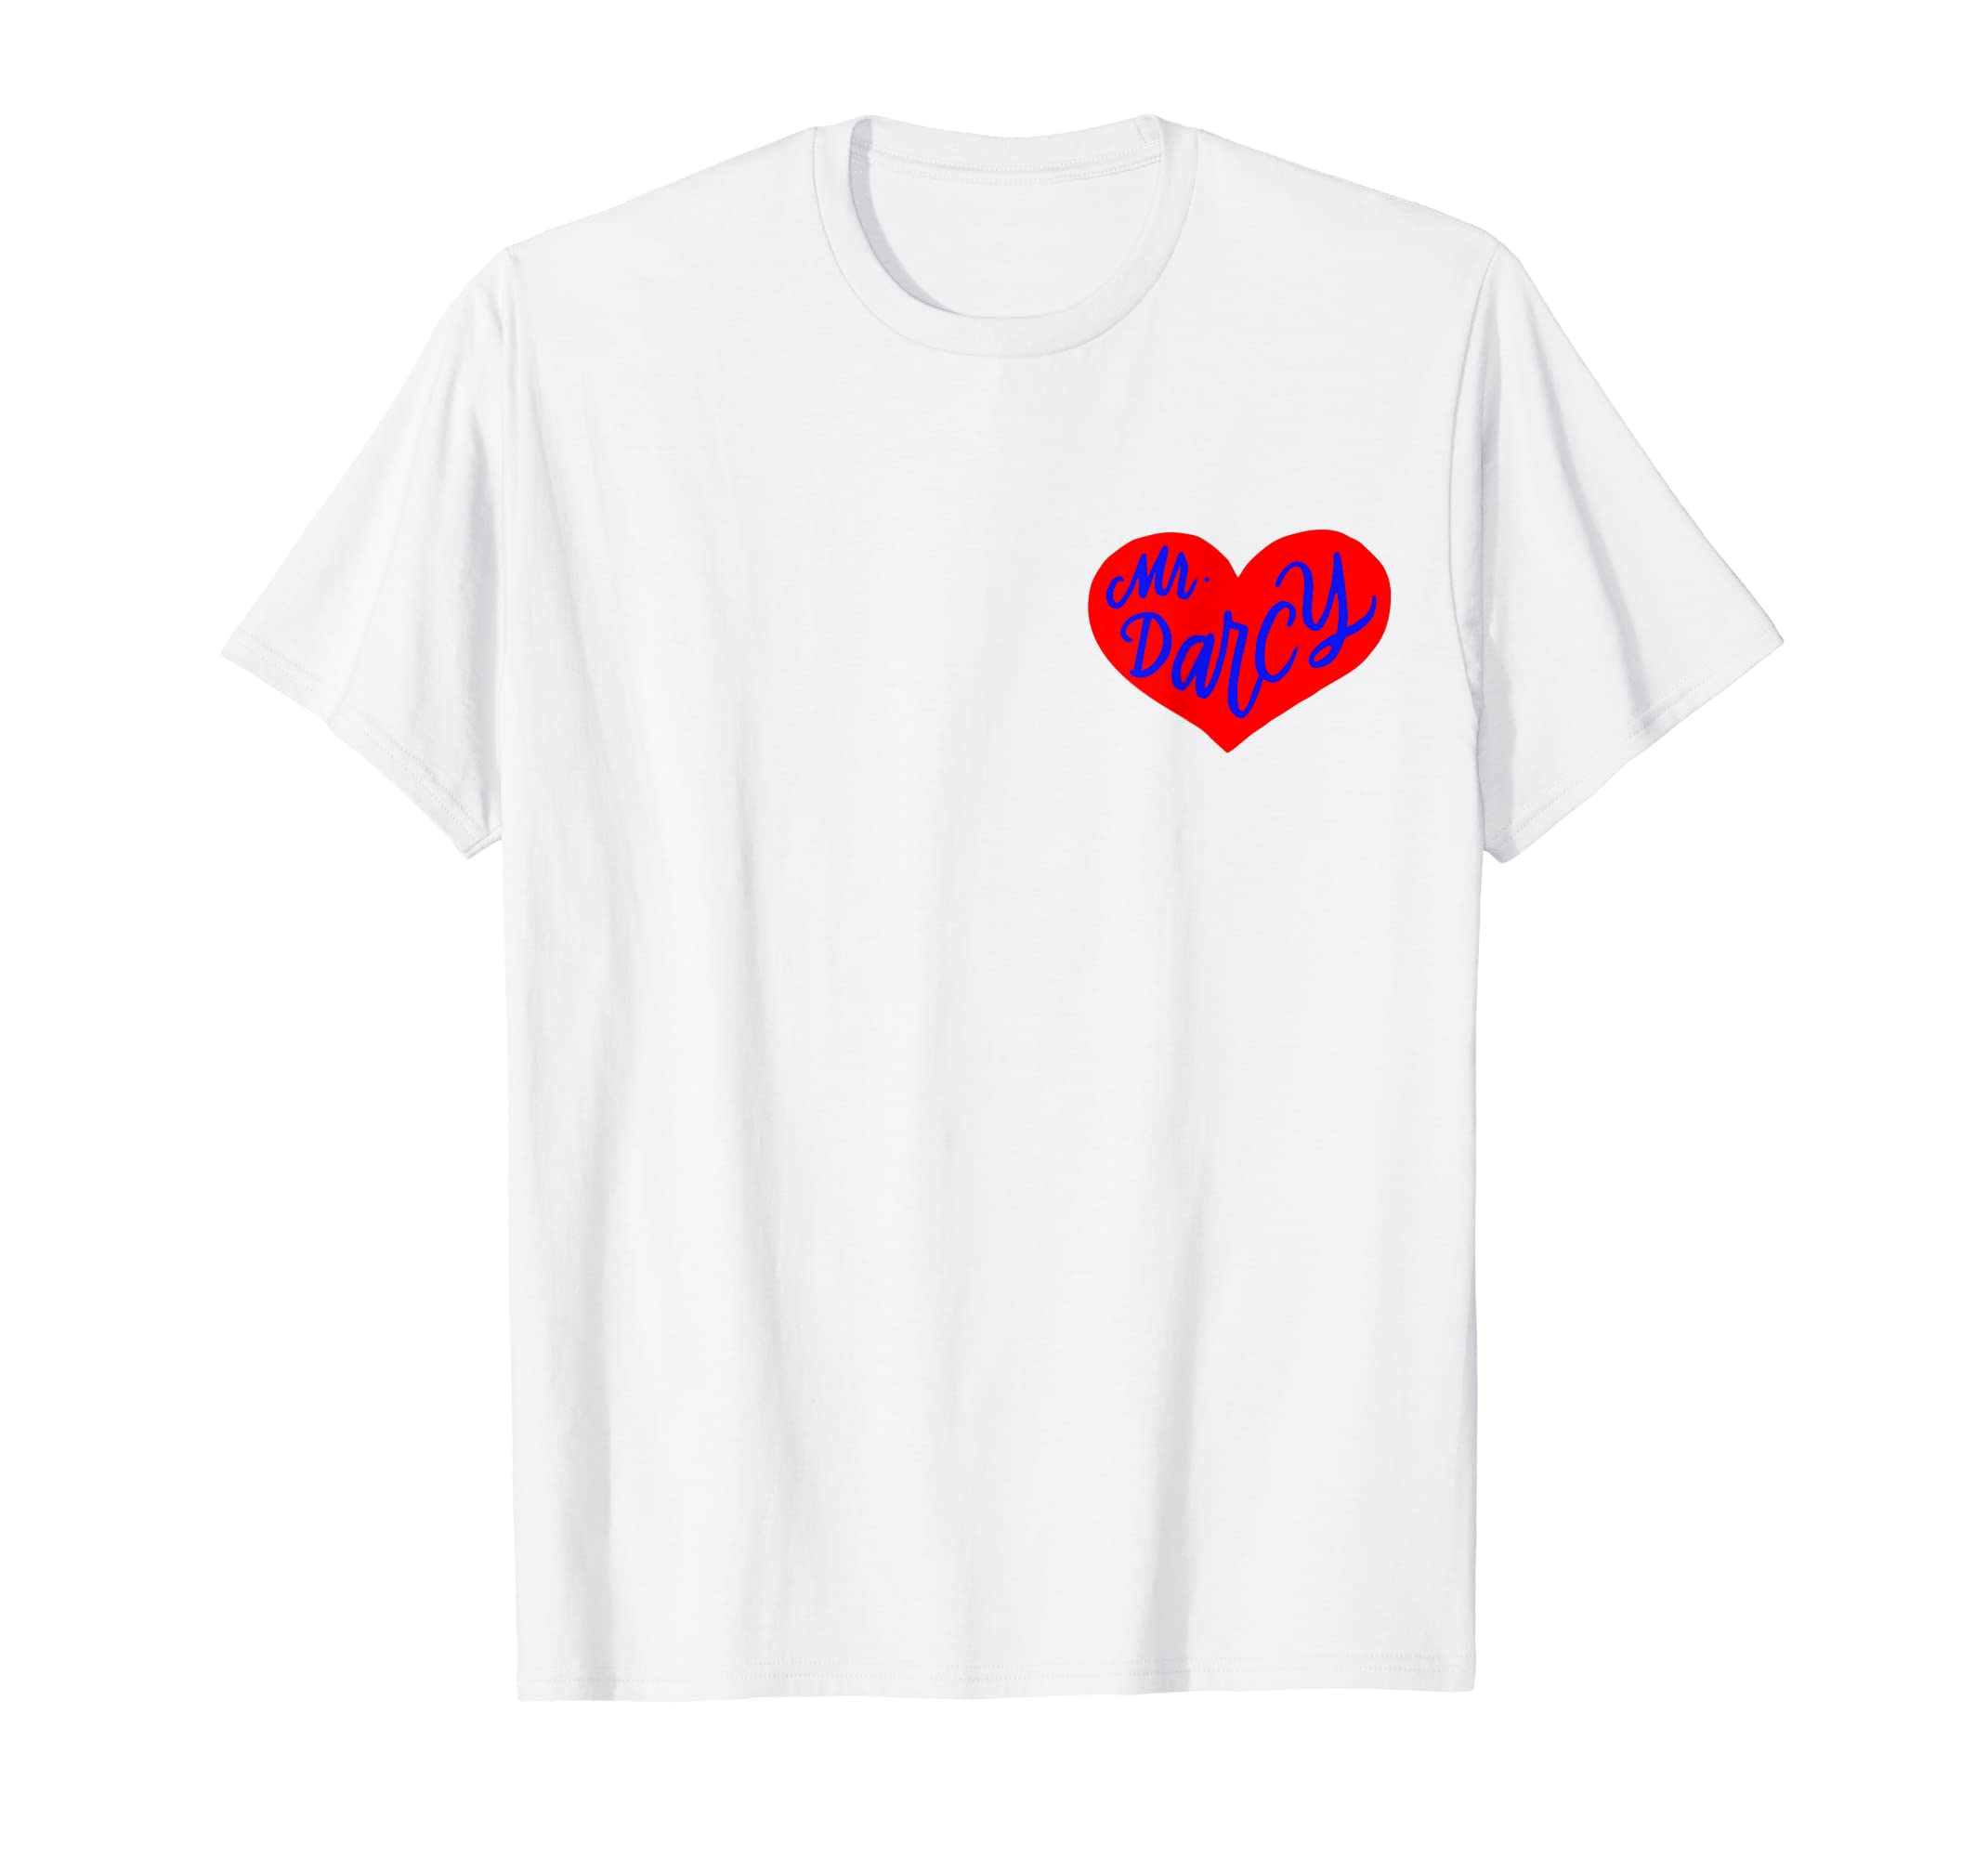 acdc0ff12a Amazon.com  Jane Austen Collection Mr Darcy Love Heart Pocket T-Shirt   Clothing